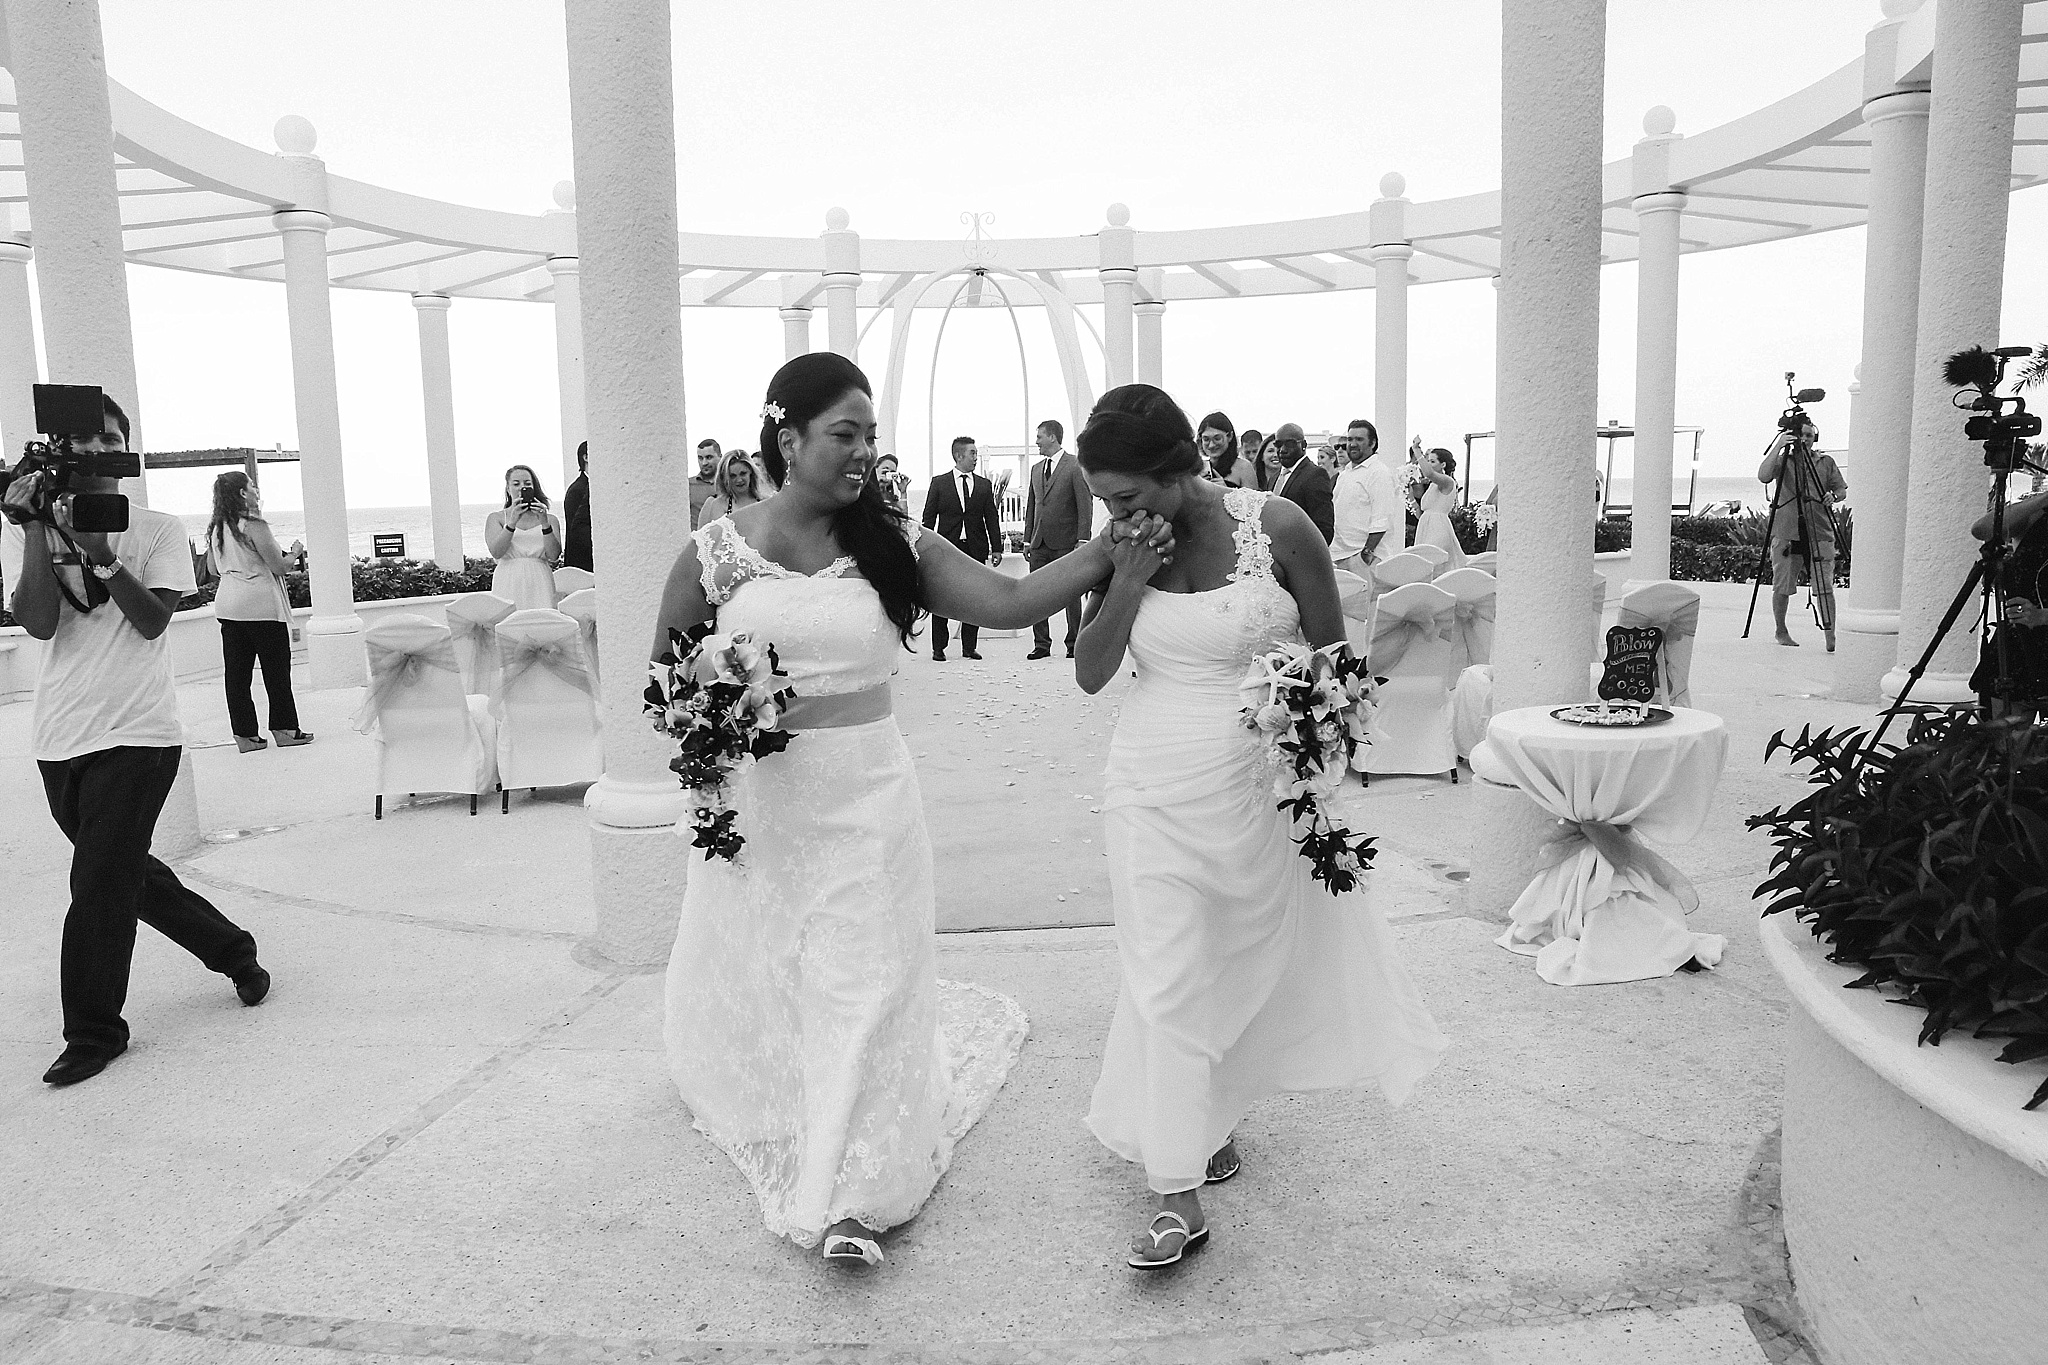 brides exit ceremony holding DIY bouquets Mexico LGBTQ wedding Leah Moyers Photography